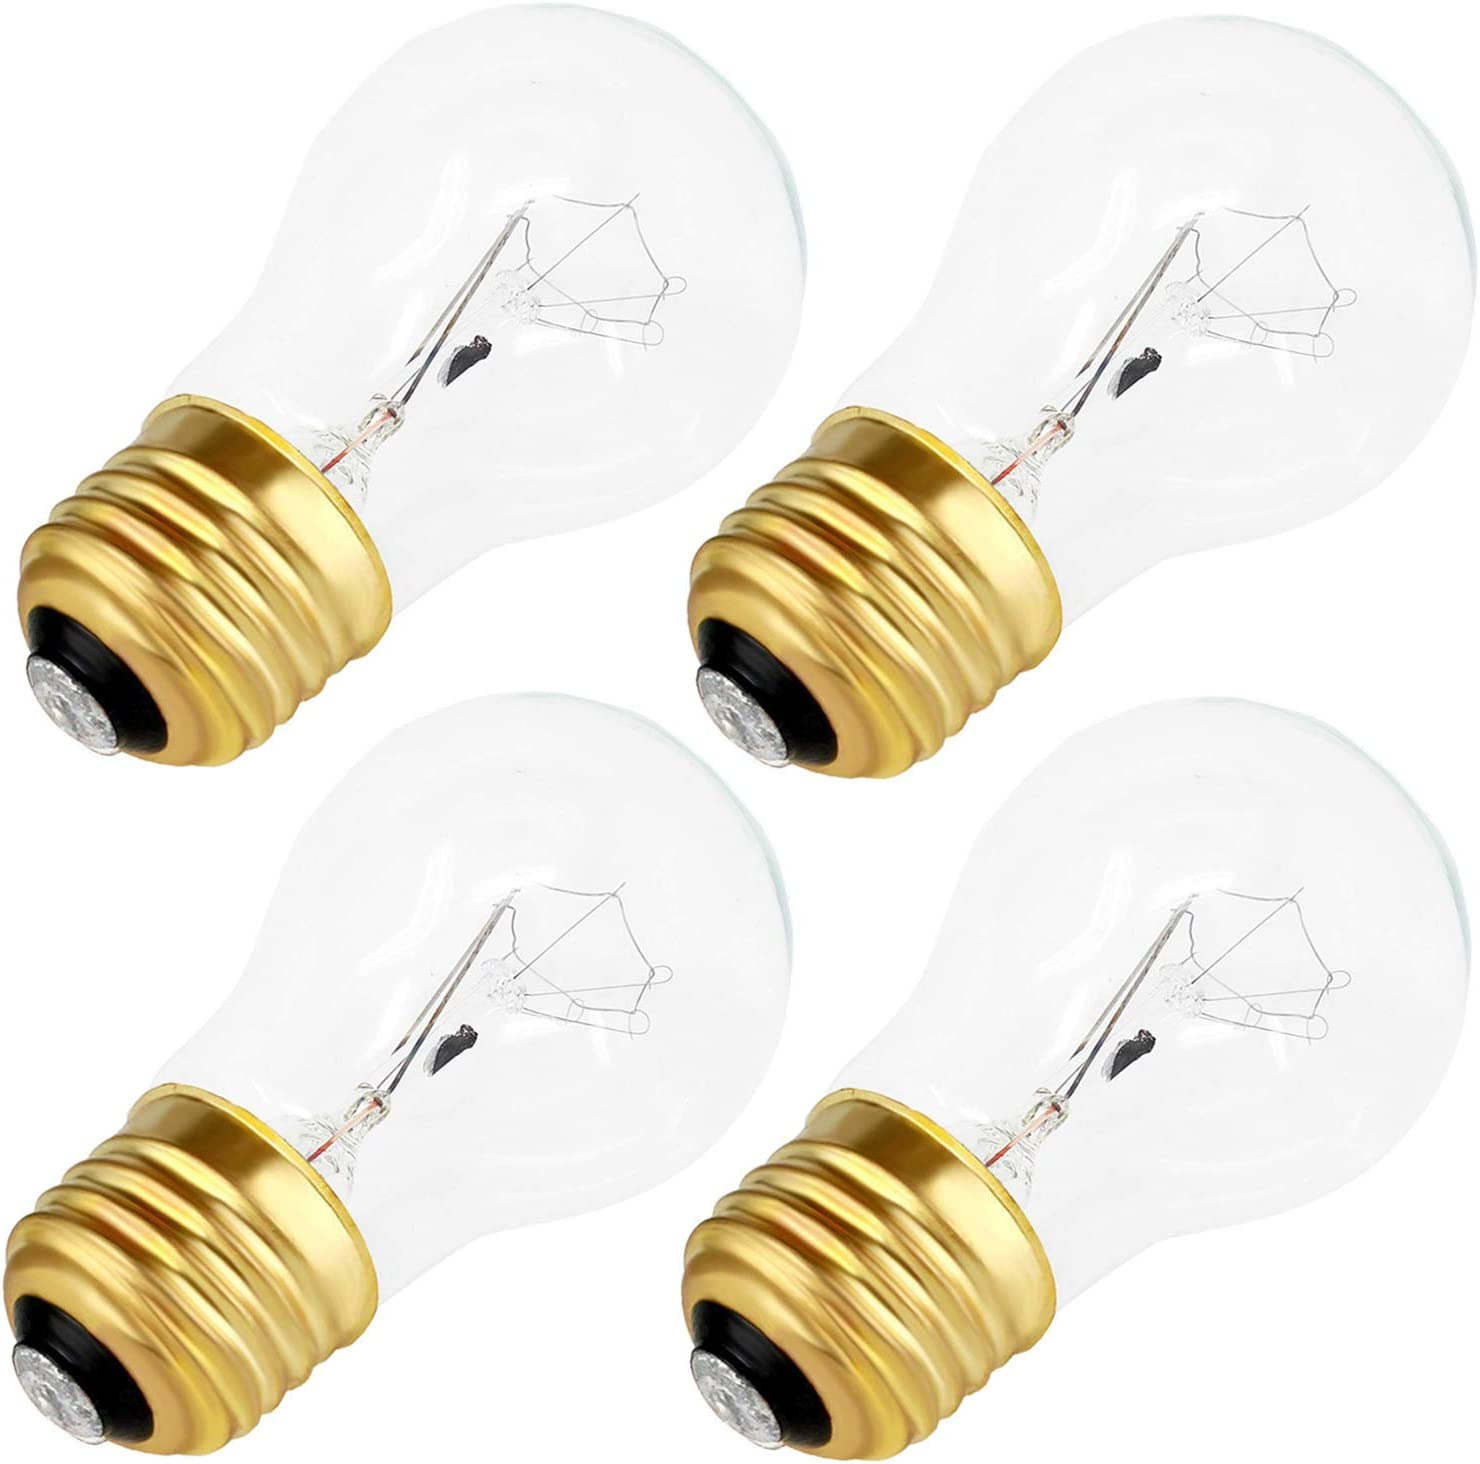 Appliance Oven Refrigerator Bulbs, A15 Shape Appliance Bulb, 40 Watt, High Temp, E27 Medium Base, Clear Glass, Oven Bulbs